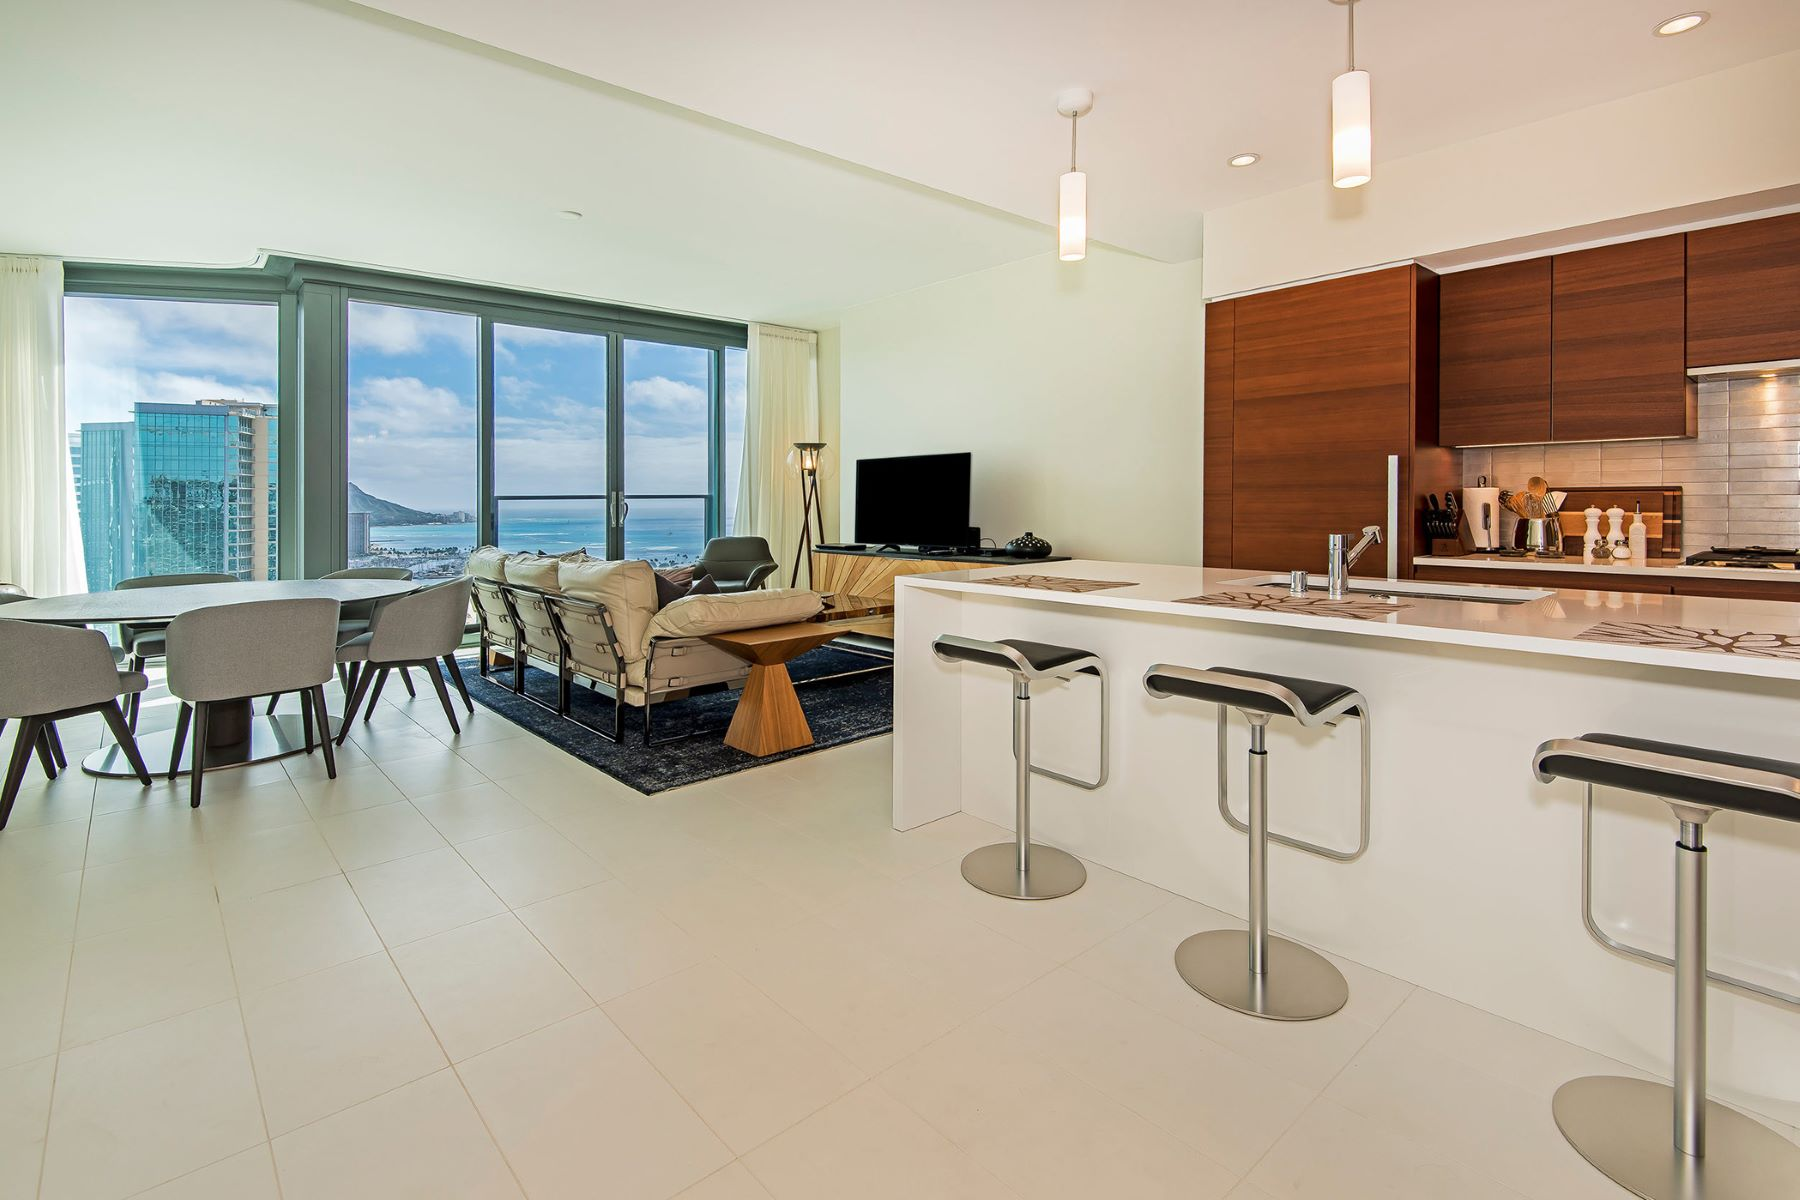 Condominium for Sale at Luxury in the Sky 1108 Auahi Street #33-E Honolulu, Hawaii 96814 United States